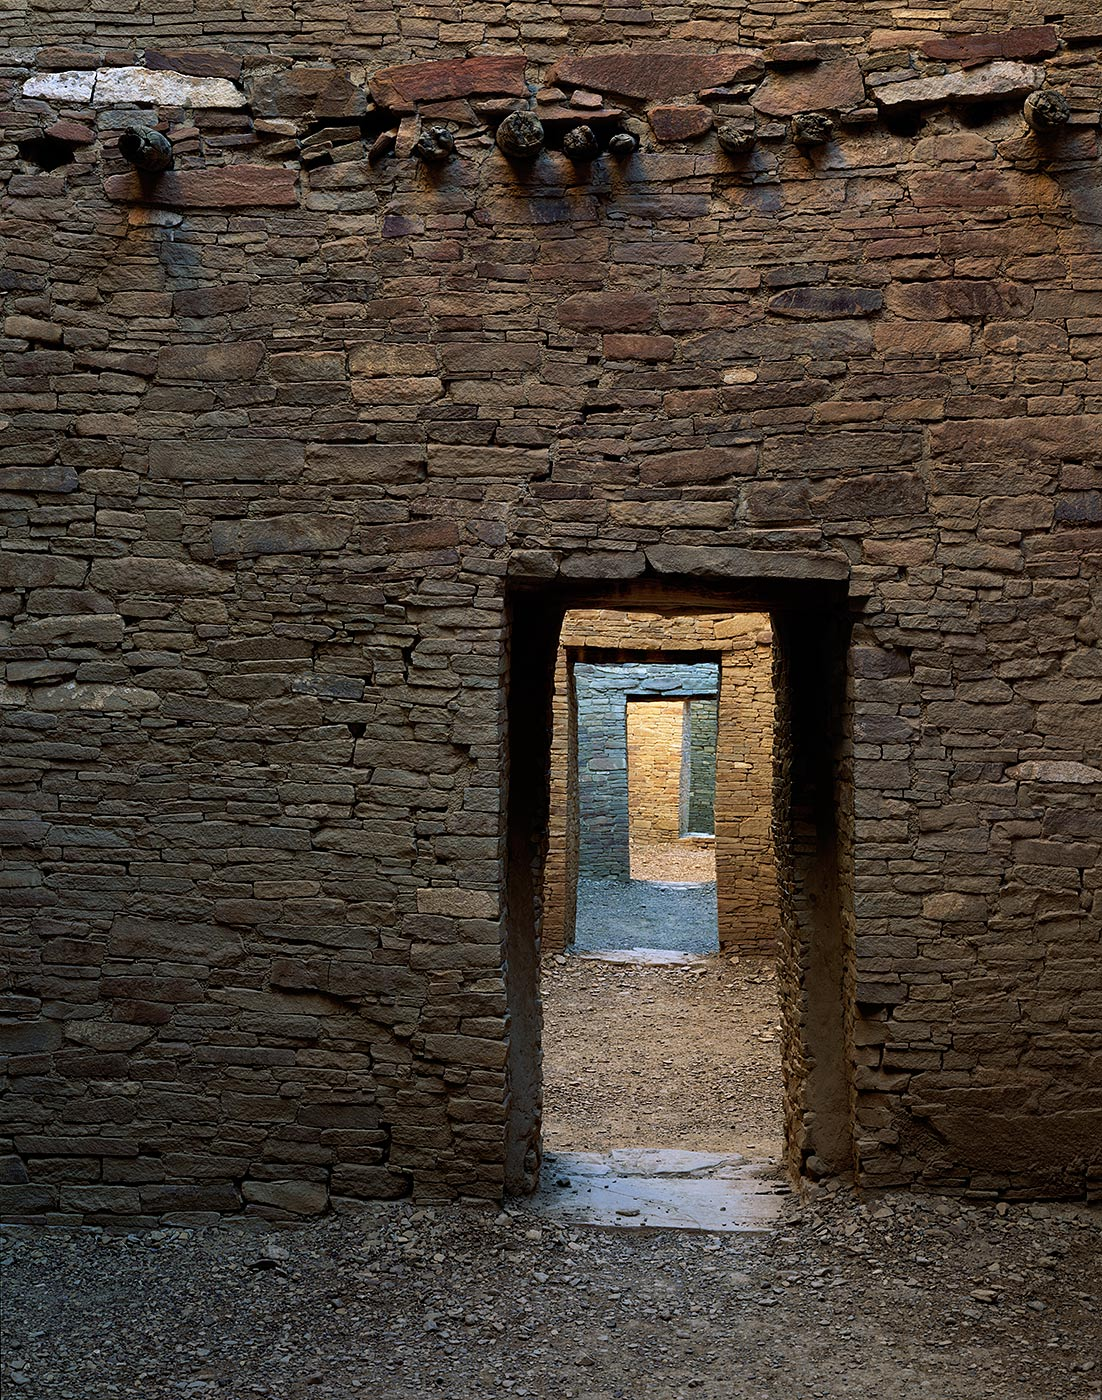 1200 Doorways Through The Ages, Chaco Culture National Park, New Mexico